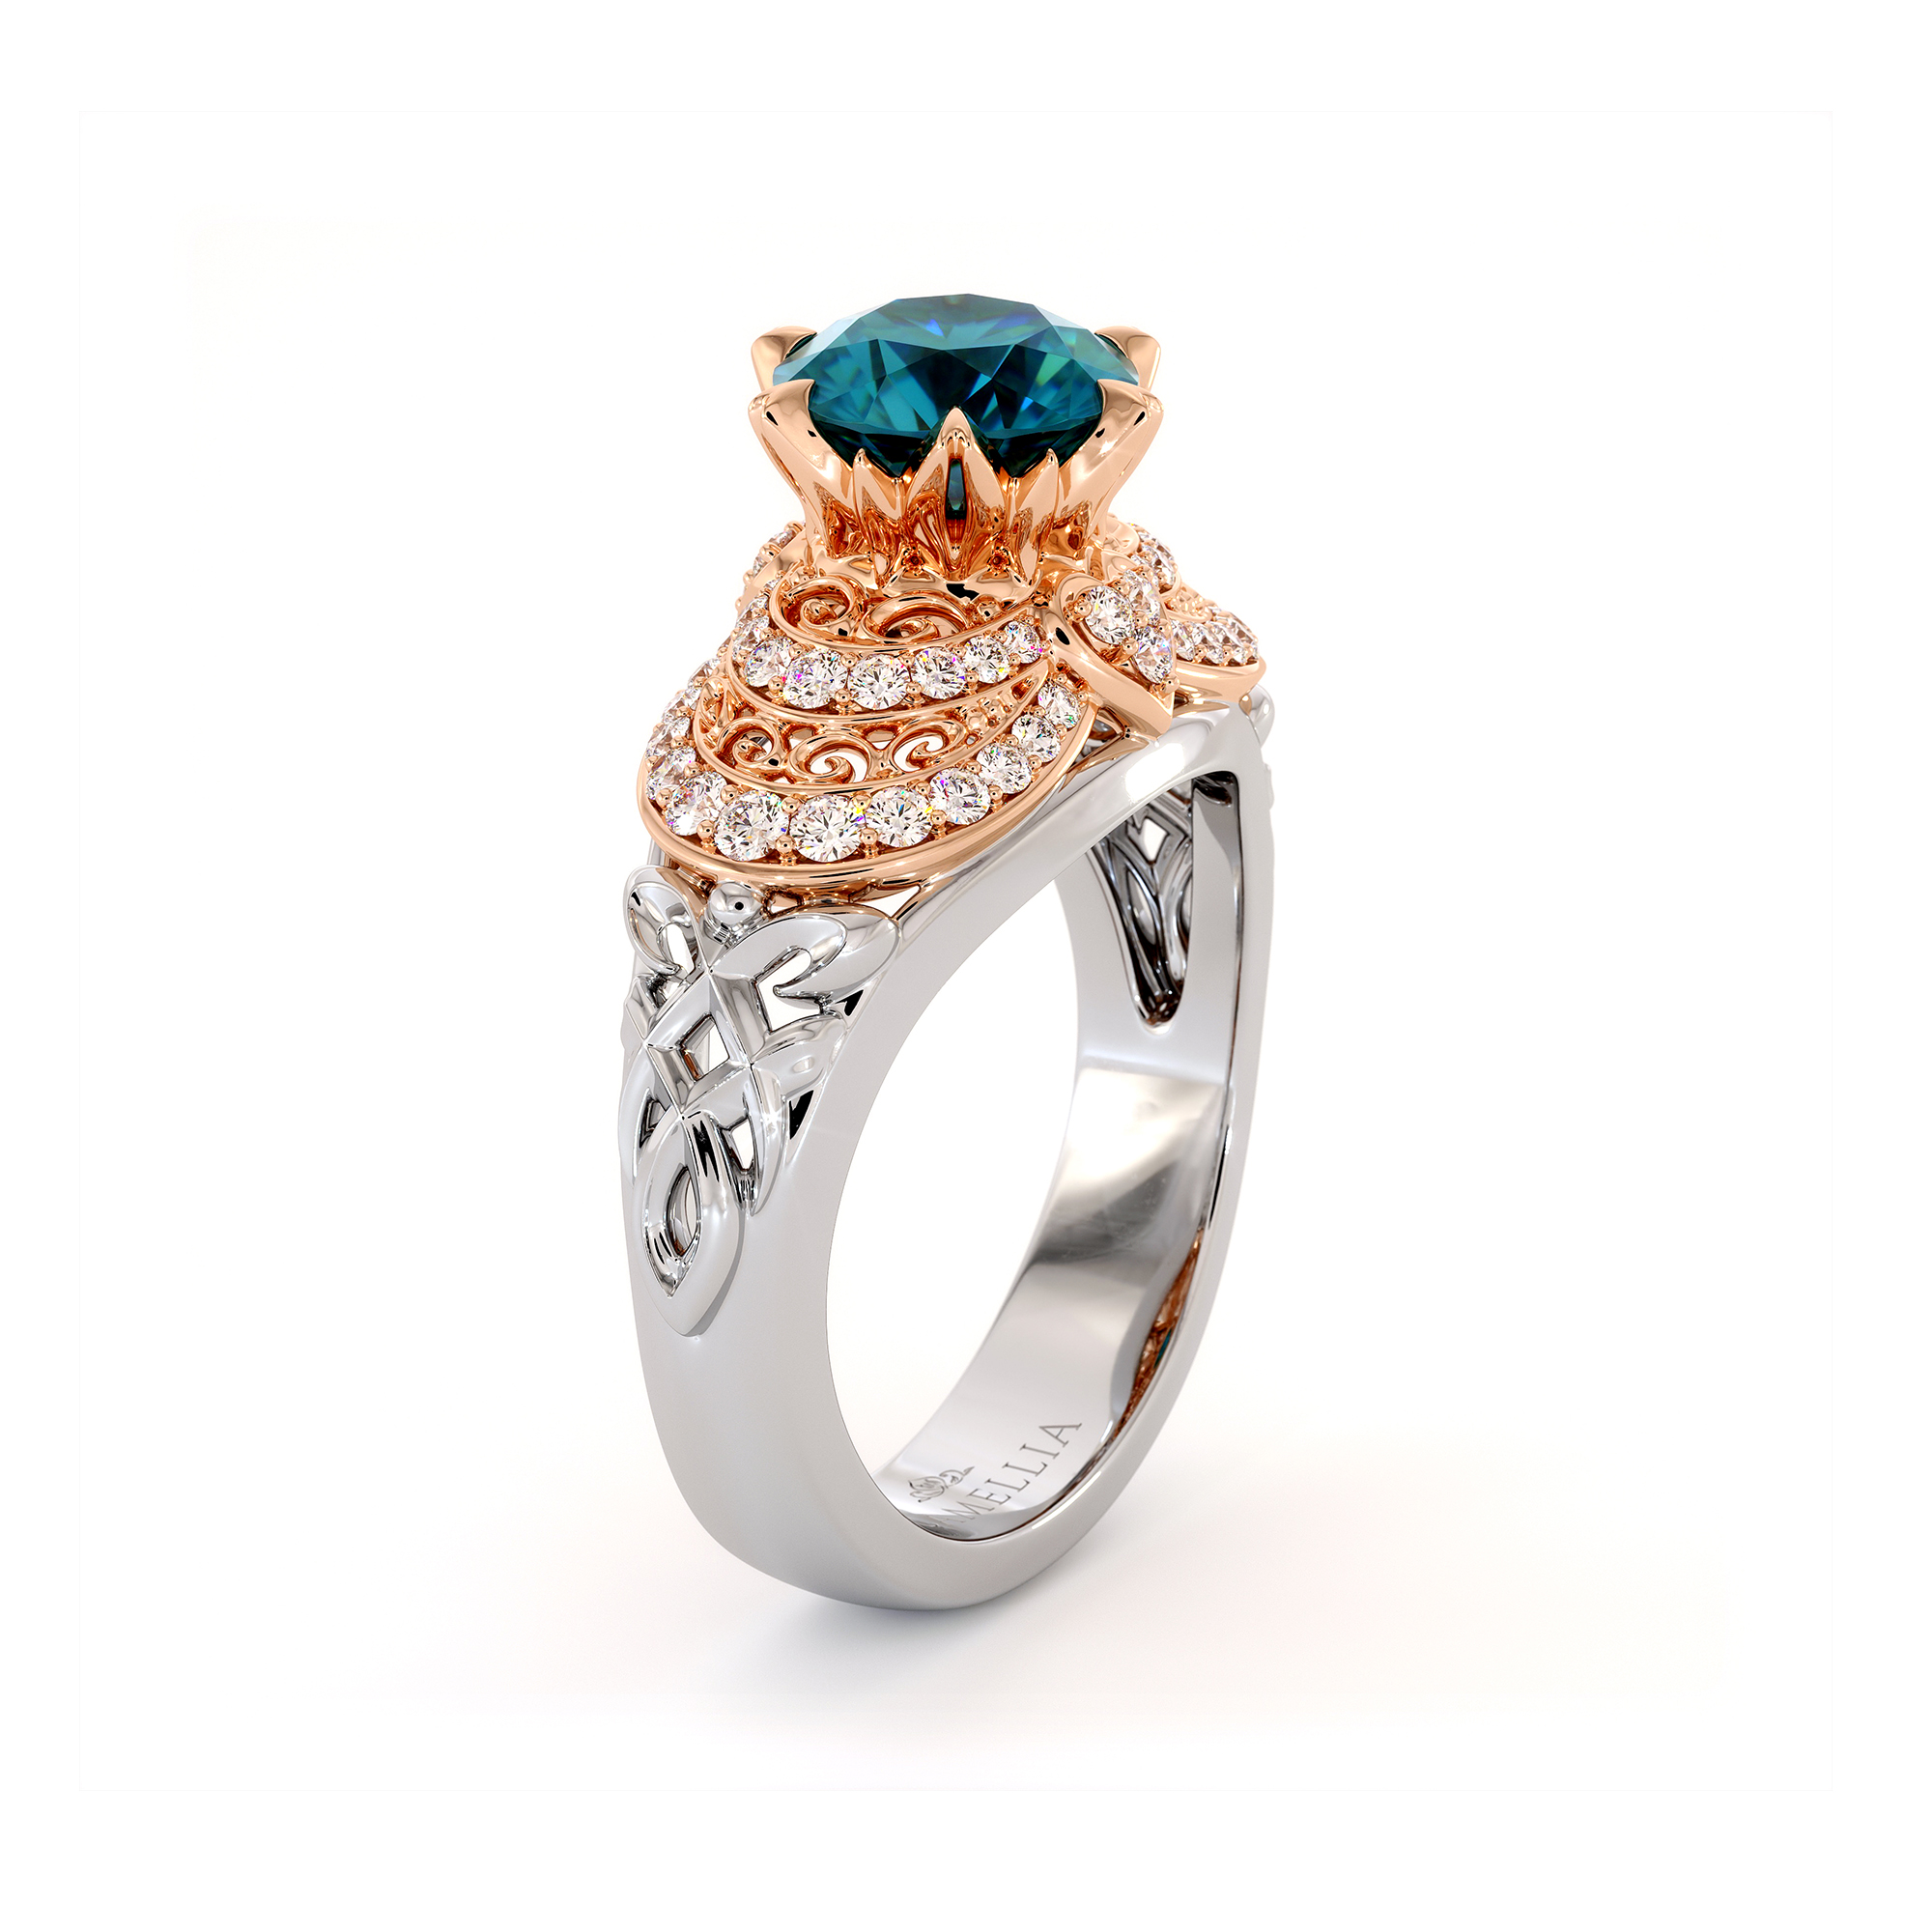 Regally Designed Blue Diamond Engagement Ring Vintage Two Tone Gold Ring